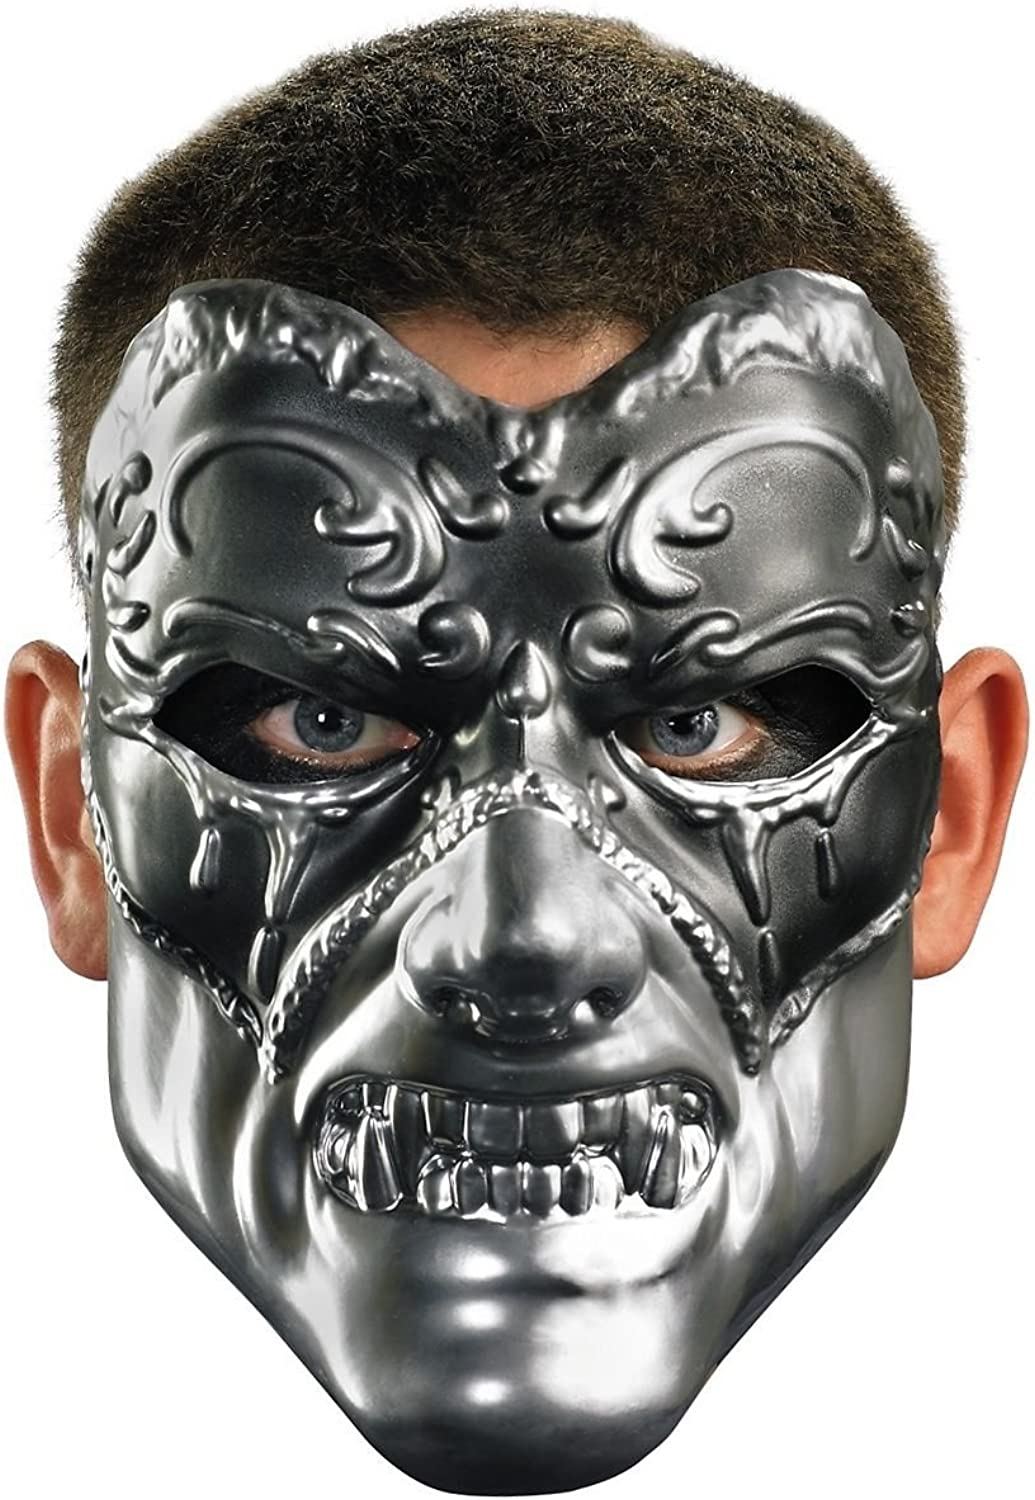 Evil Masquerade Mask Scary Costume Mask Adult Halloween